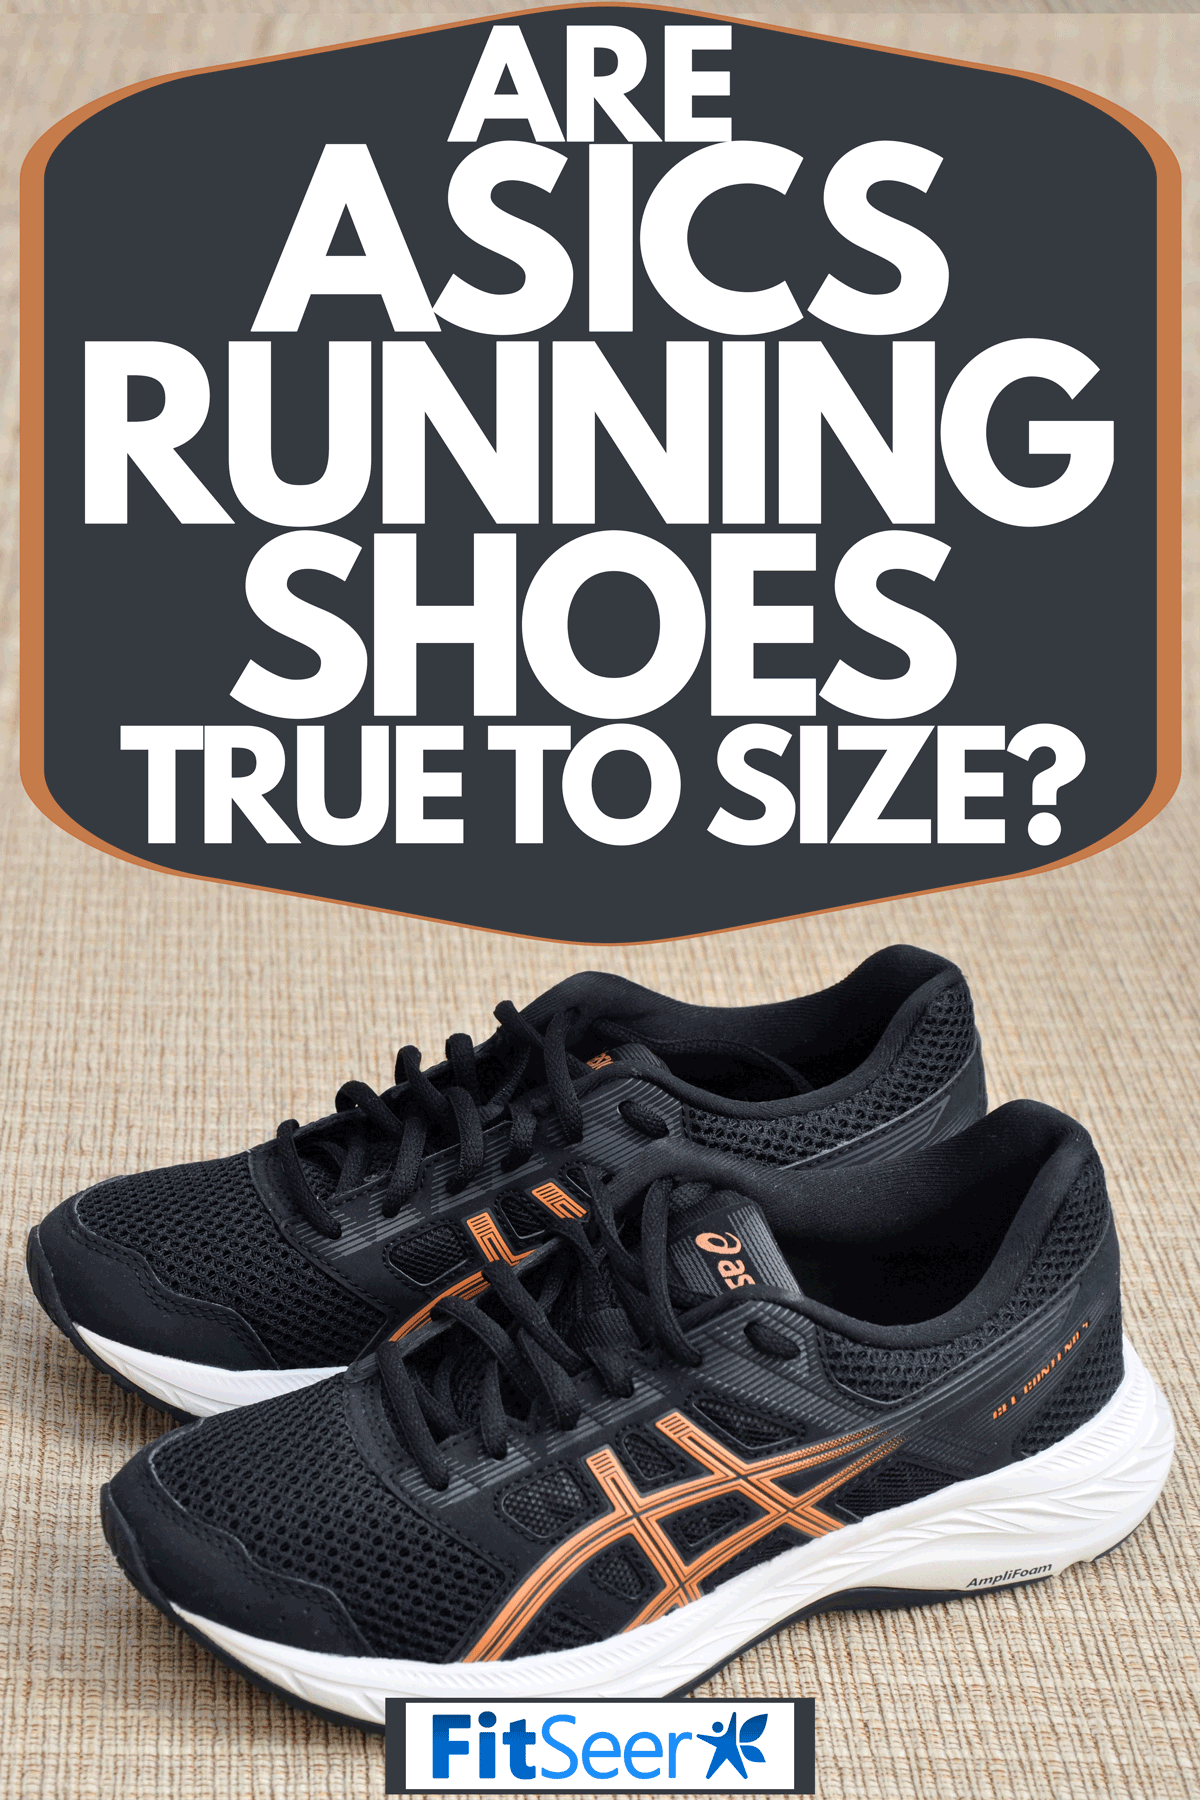 Women's black & peach ASICS running shoes, Are Asics Running Shoes True To Size?